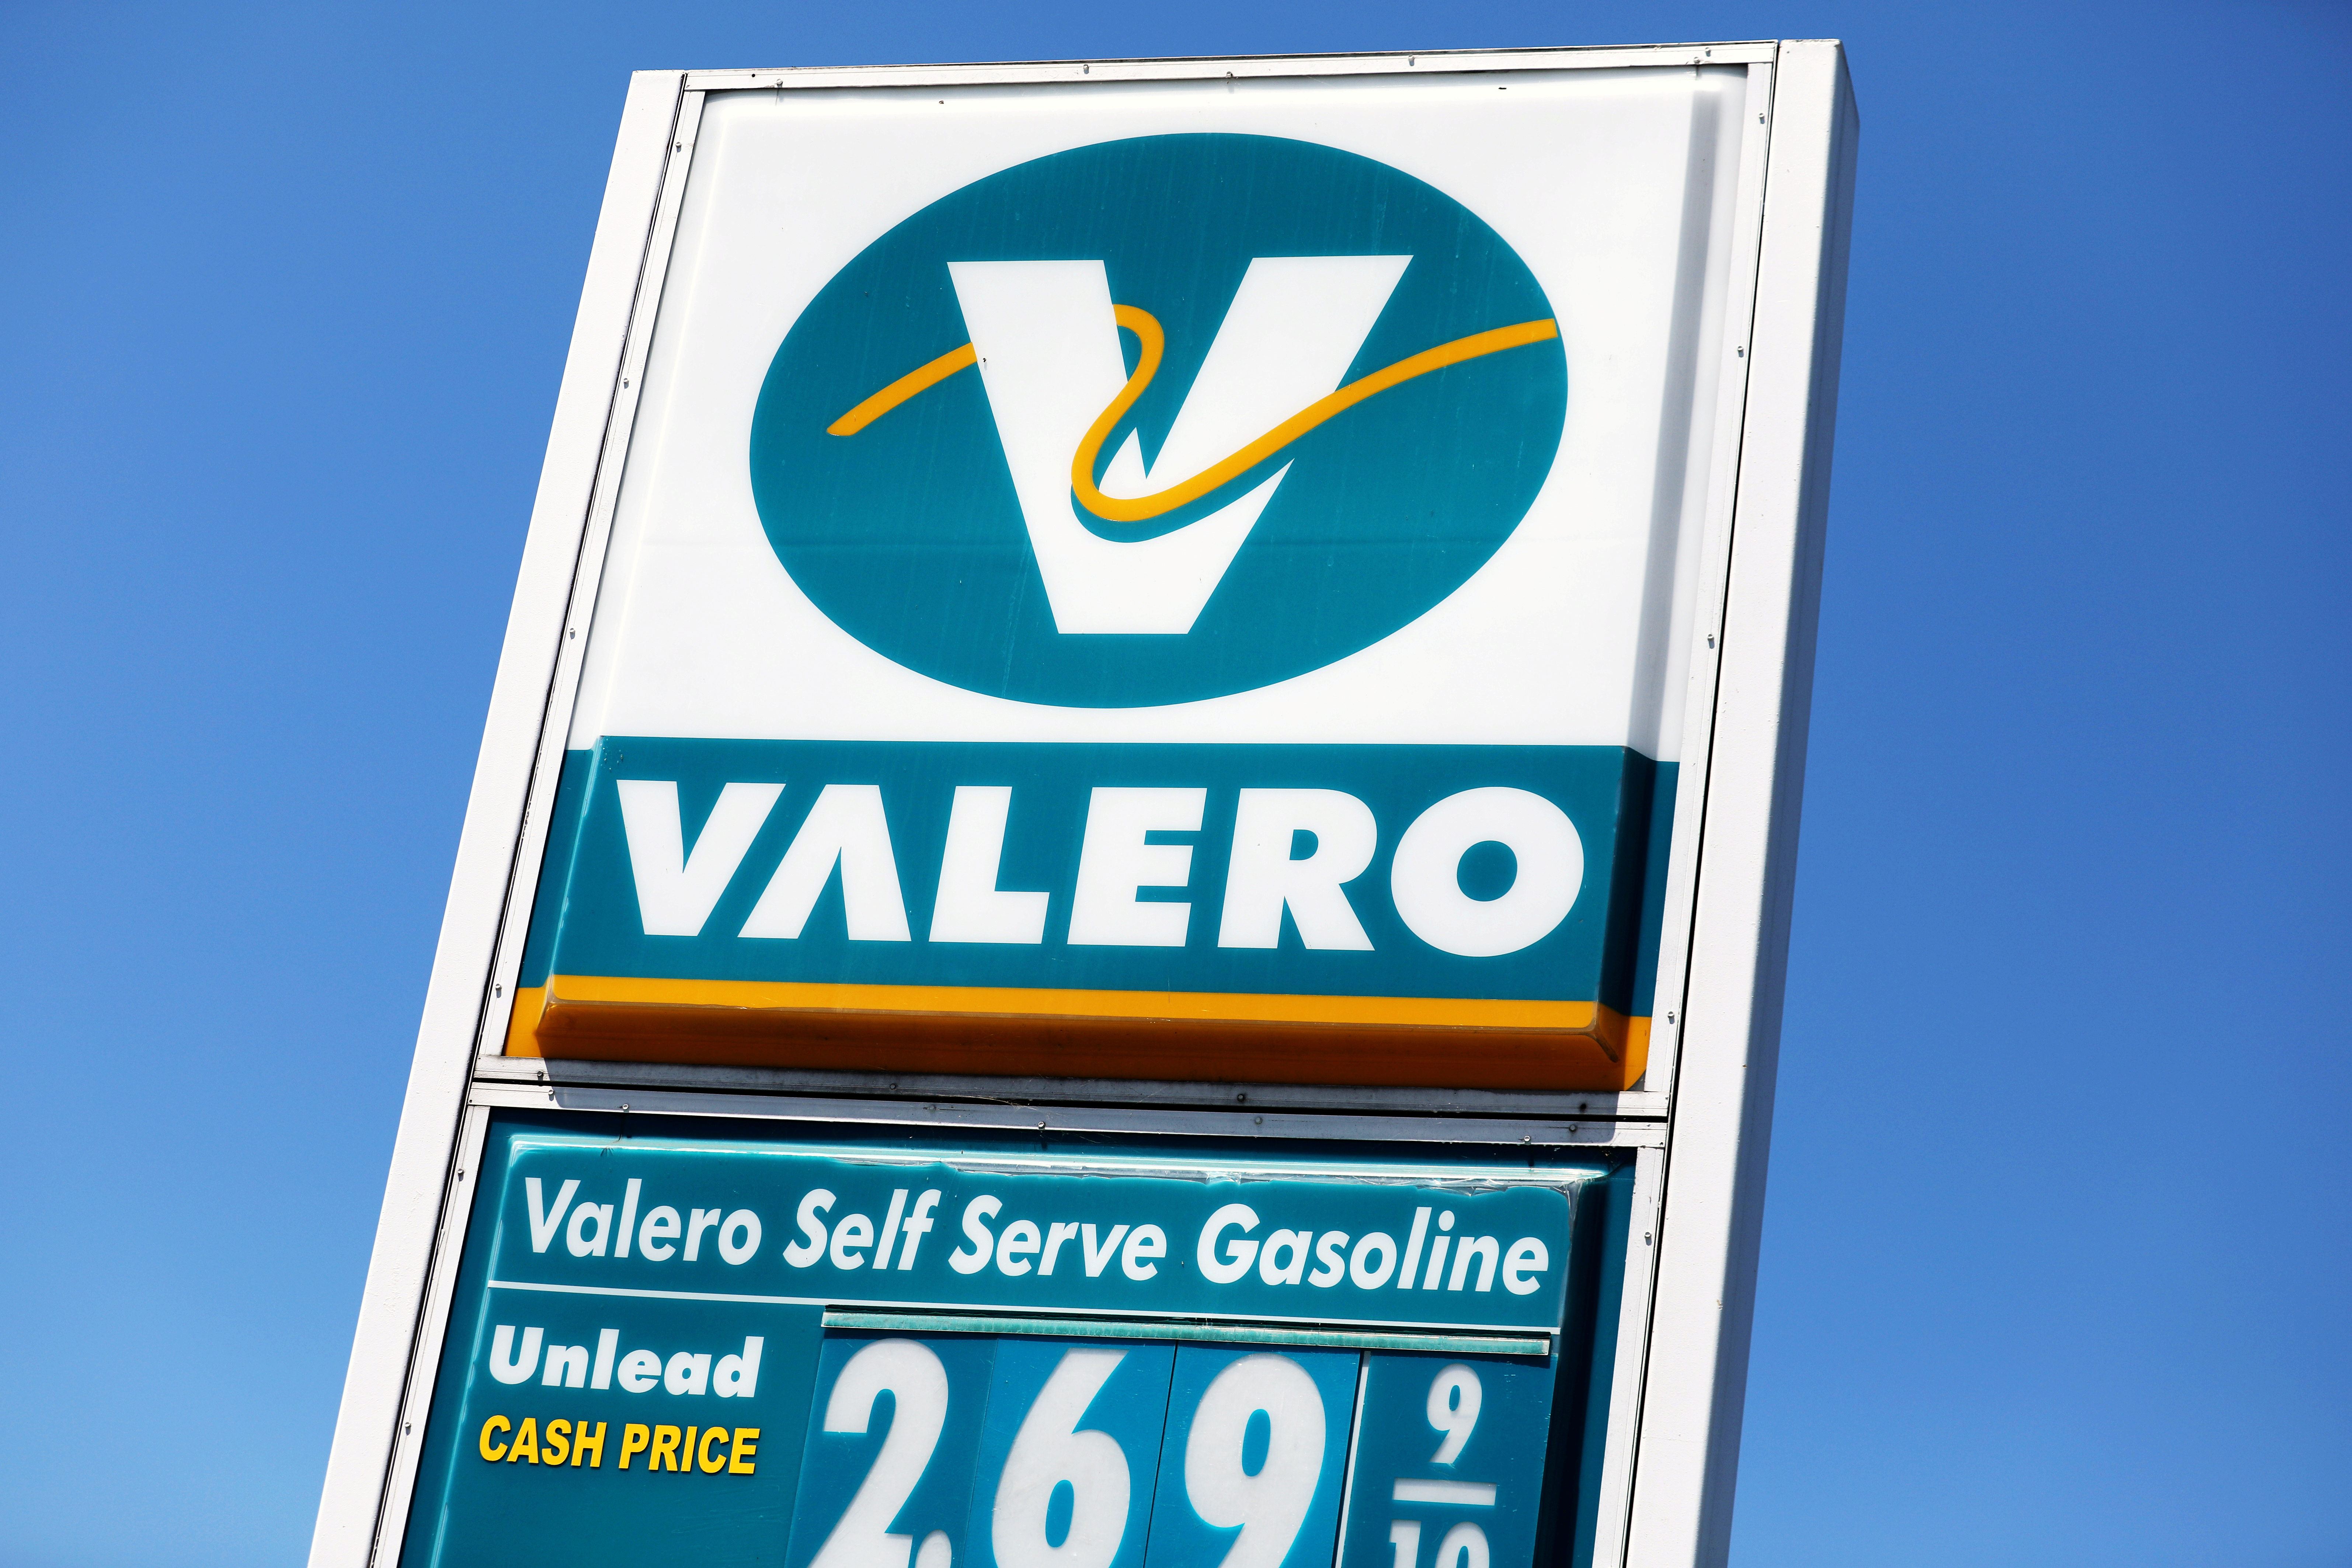 A Valero Energy Corp. gas station is pictured in El Cajon, California, U.S., August 8, 2017. Picture taken August 8, 2016.   REUTERS/Mike Blake